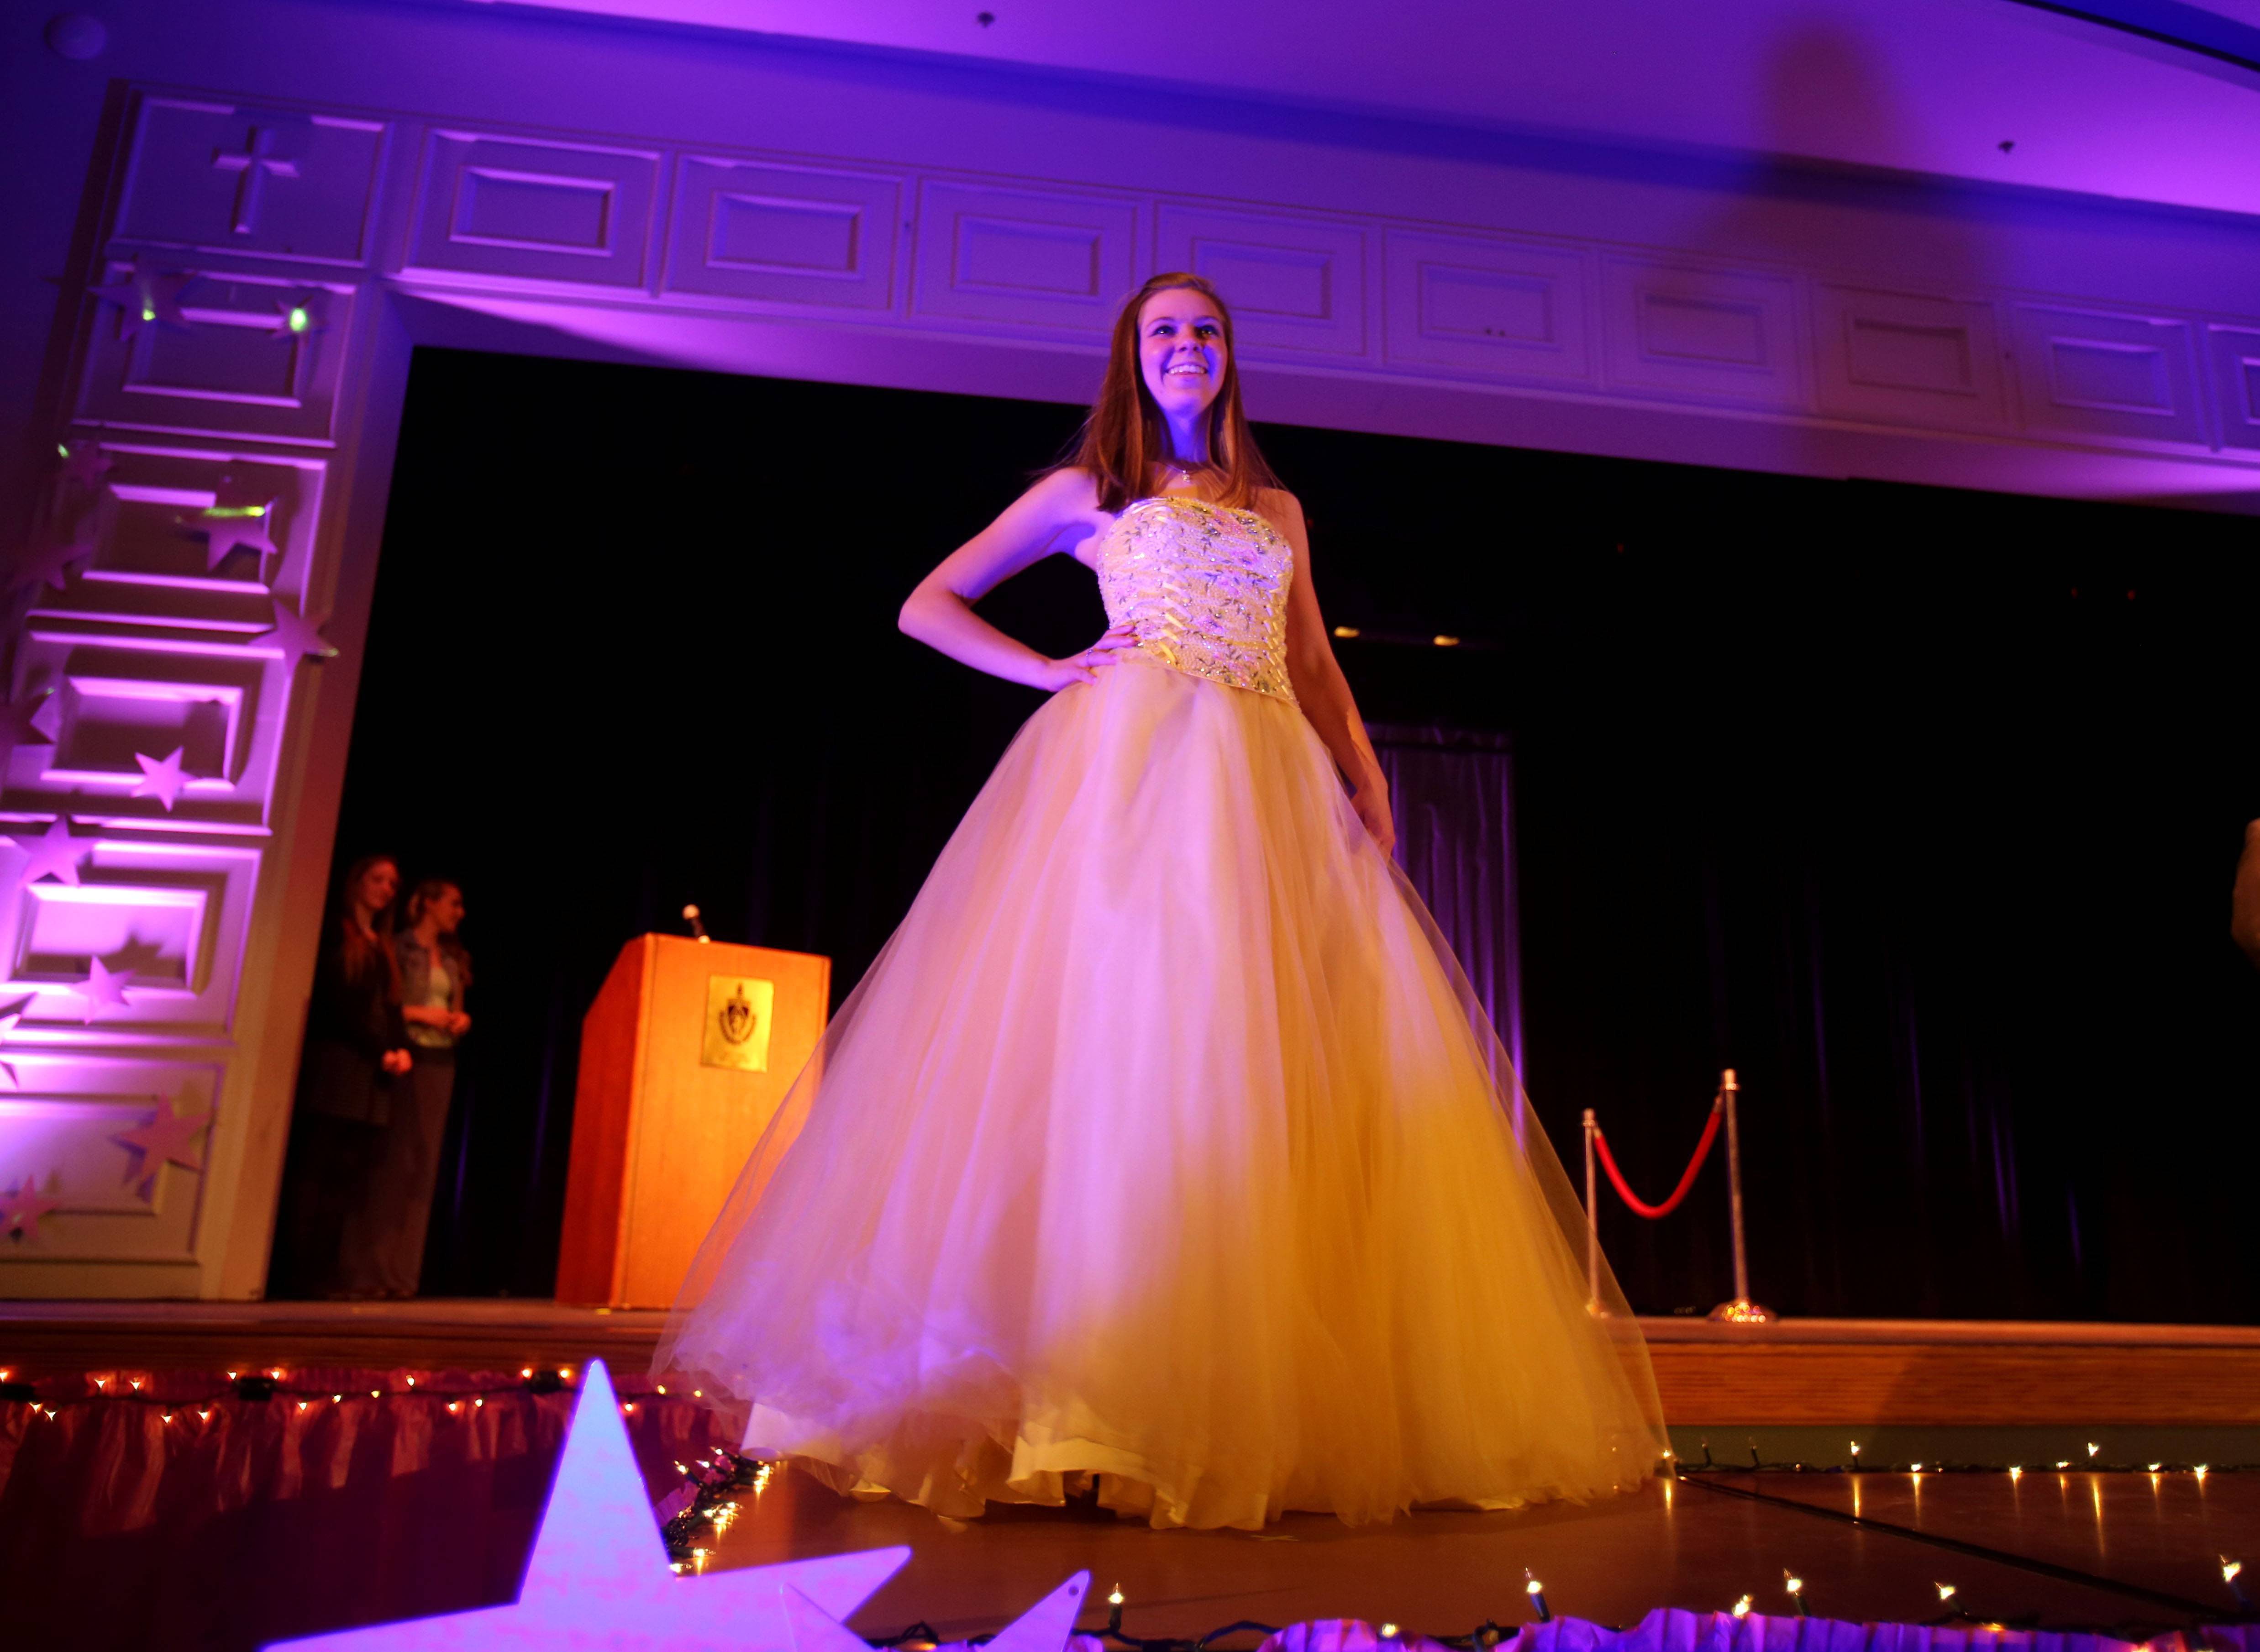 Prom dress for charity - Best Dressed